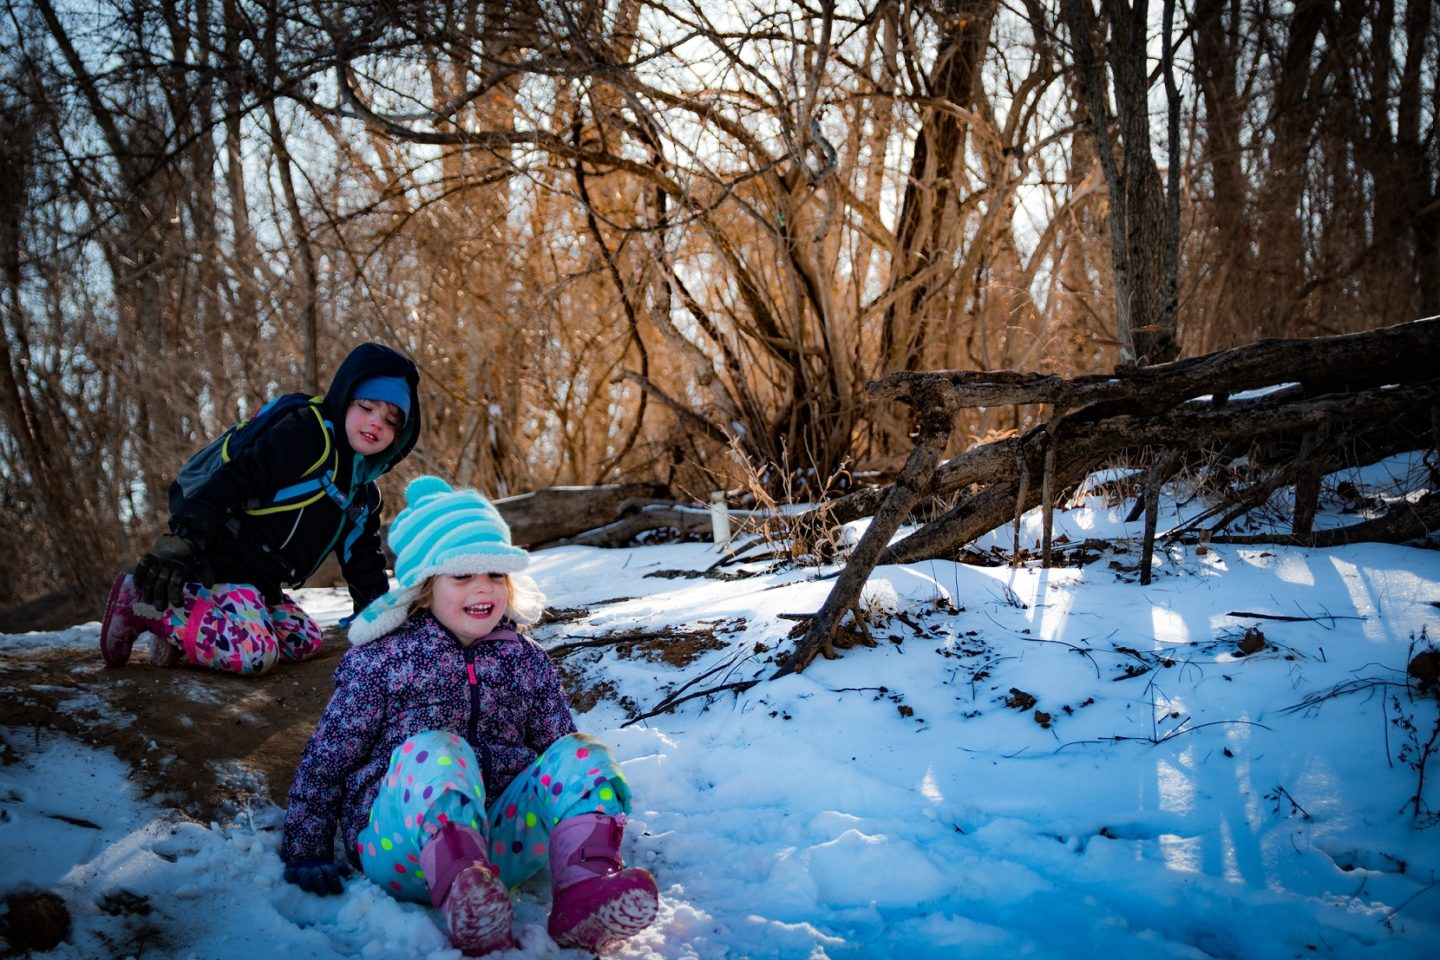 Cold weather camping by Lexie Gritlefeld for Hike it Baby